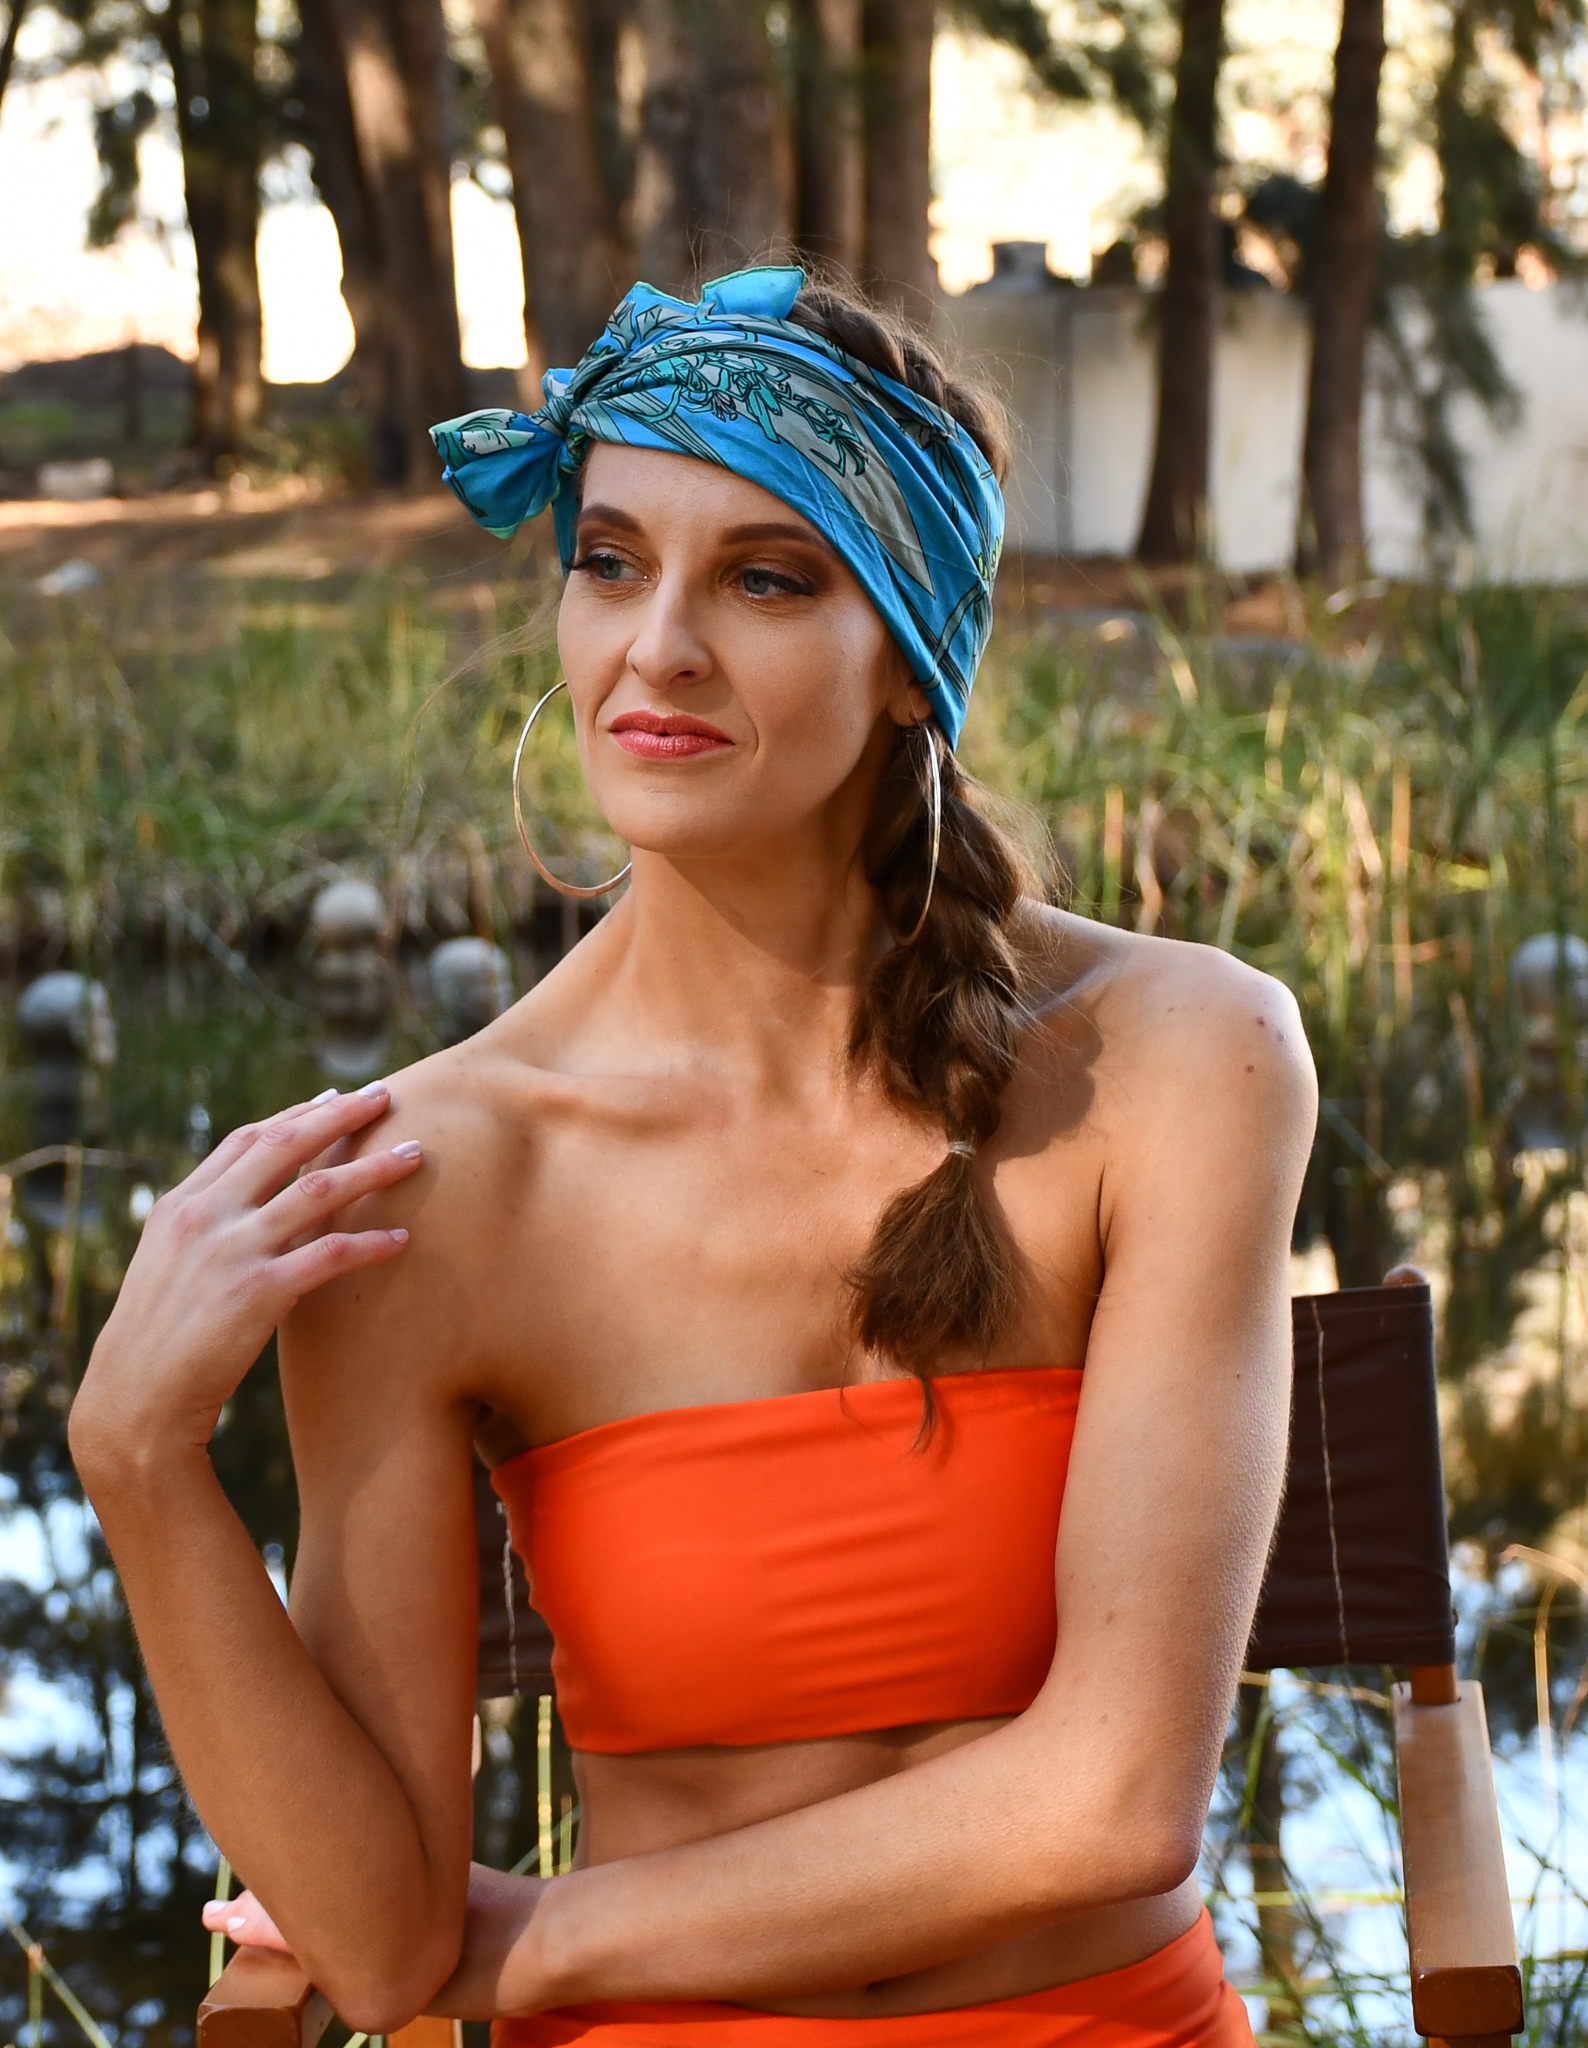 Band Tan Bikini with headscarf